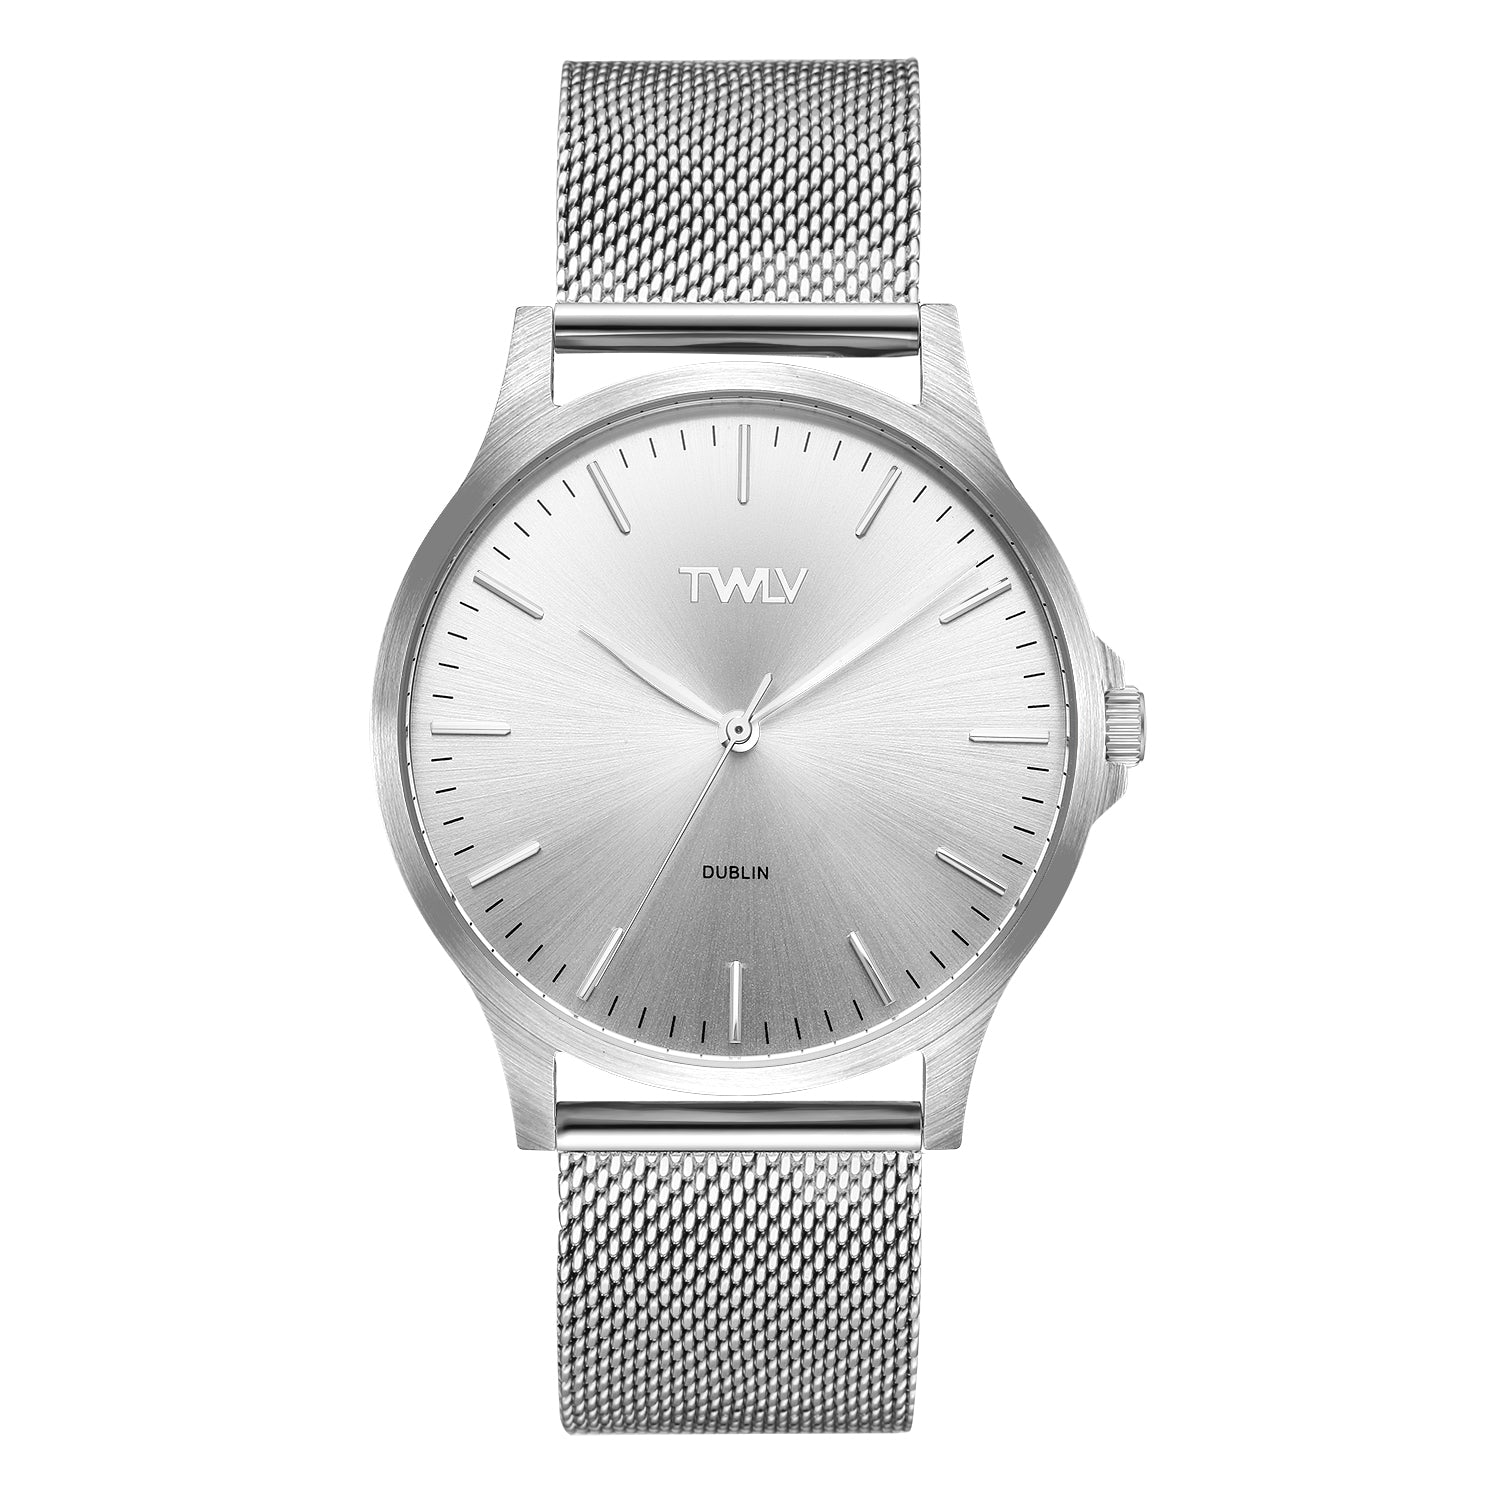 TWLV Gents Mr. Argue  Silver Mesh Watch